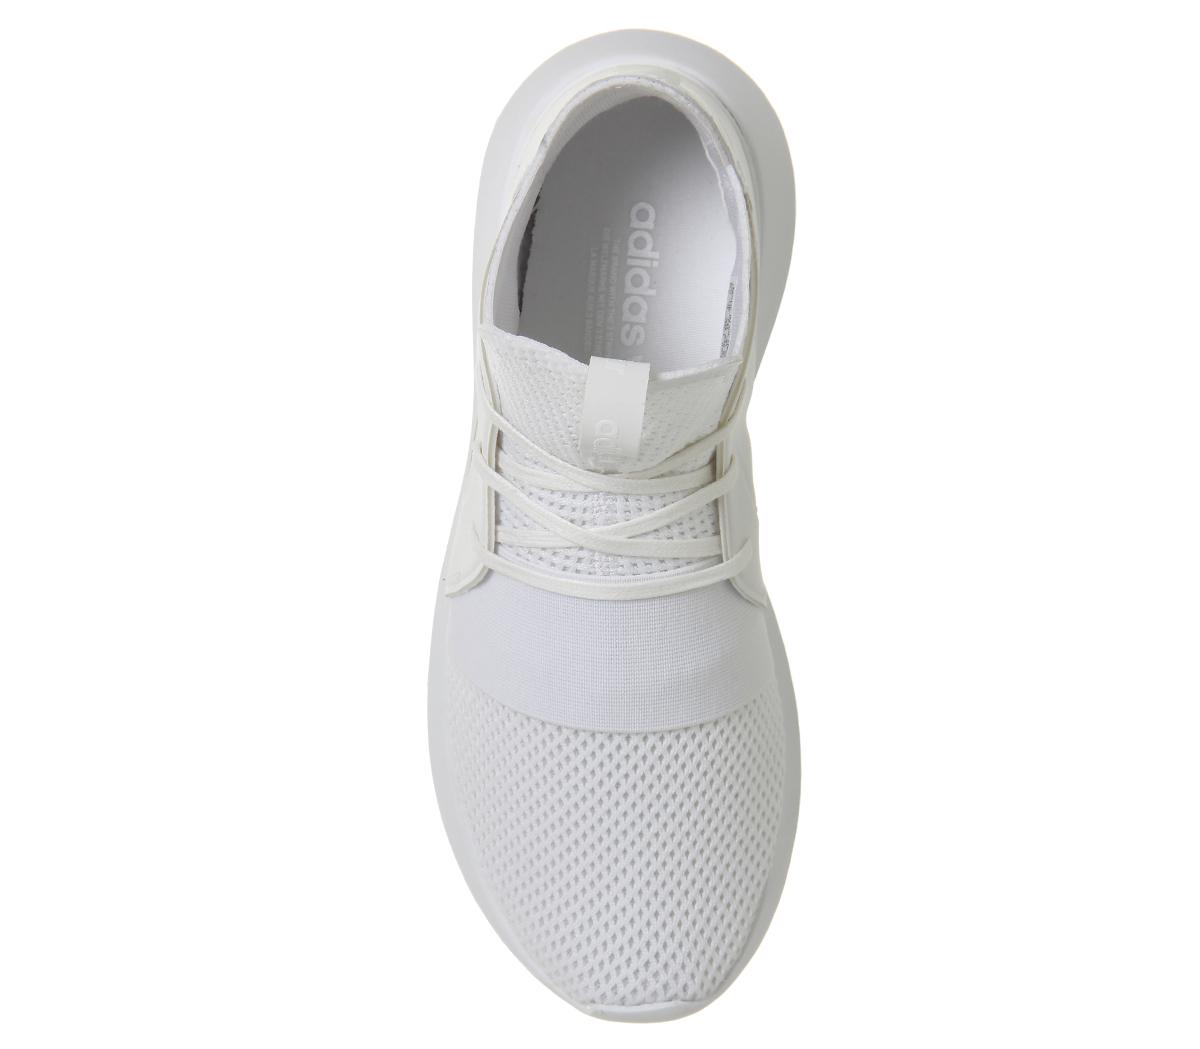 Adidas High Top Elastic Shoes All White